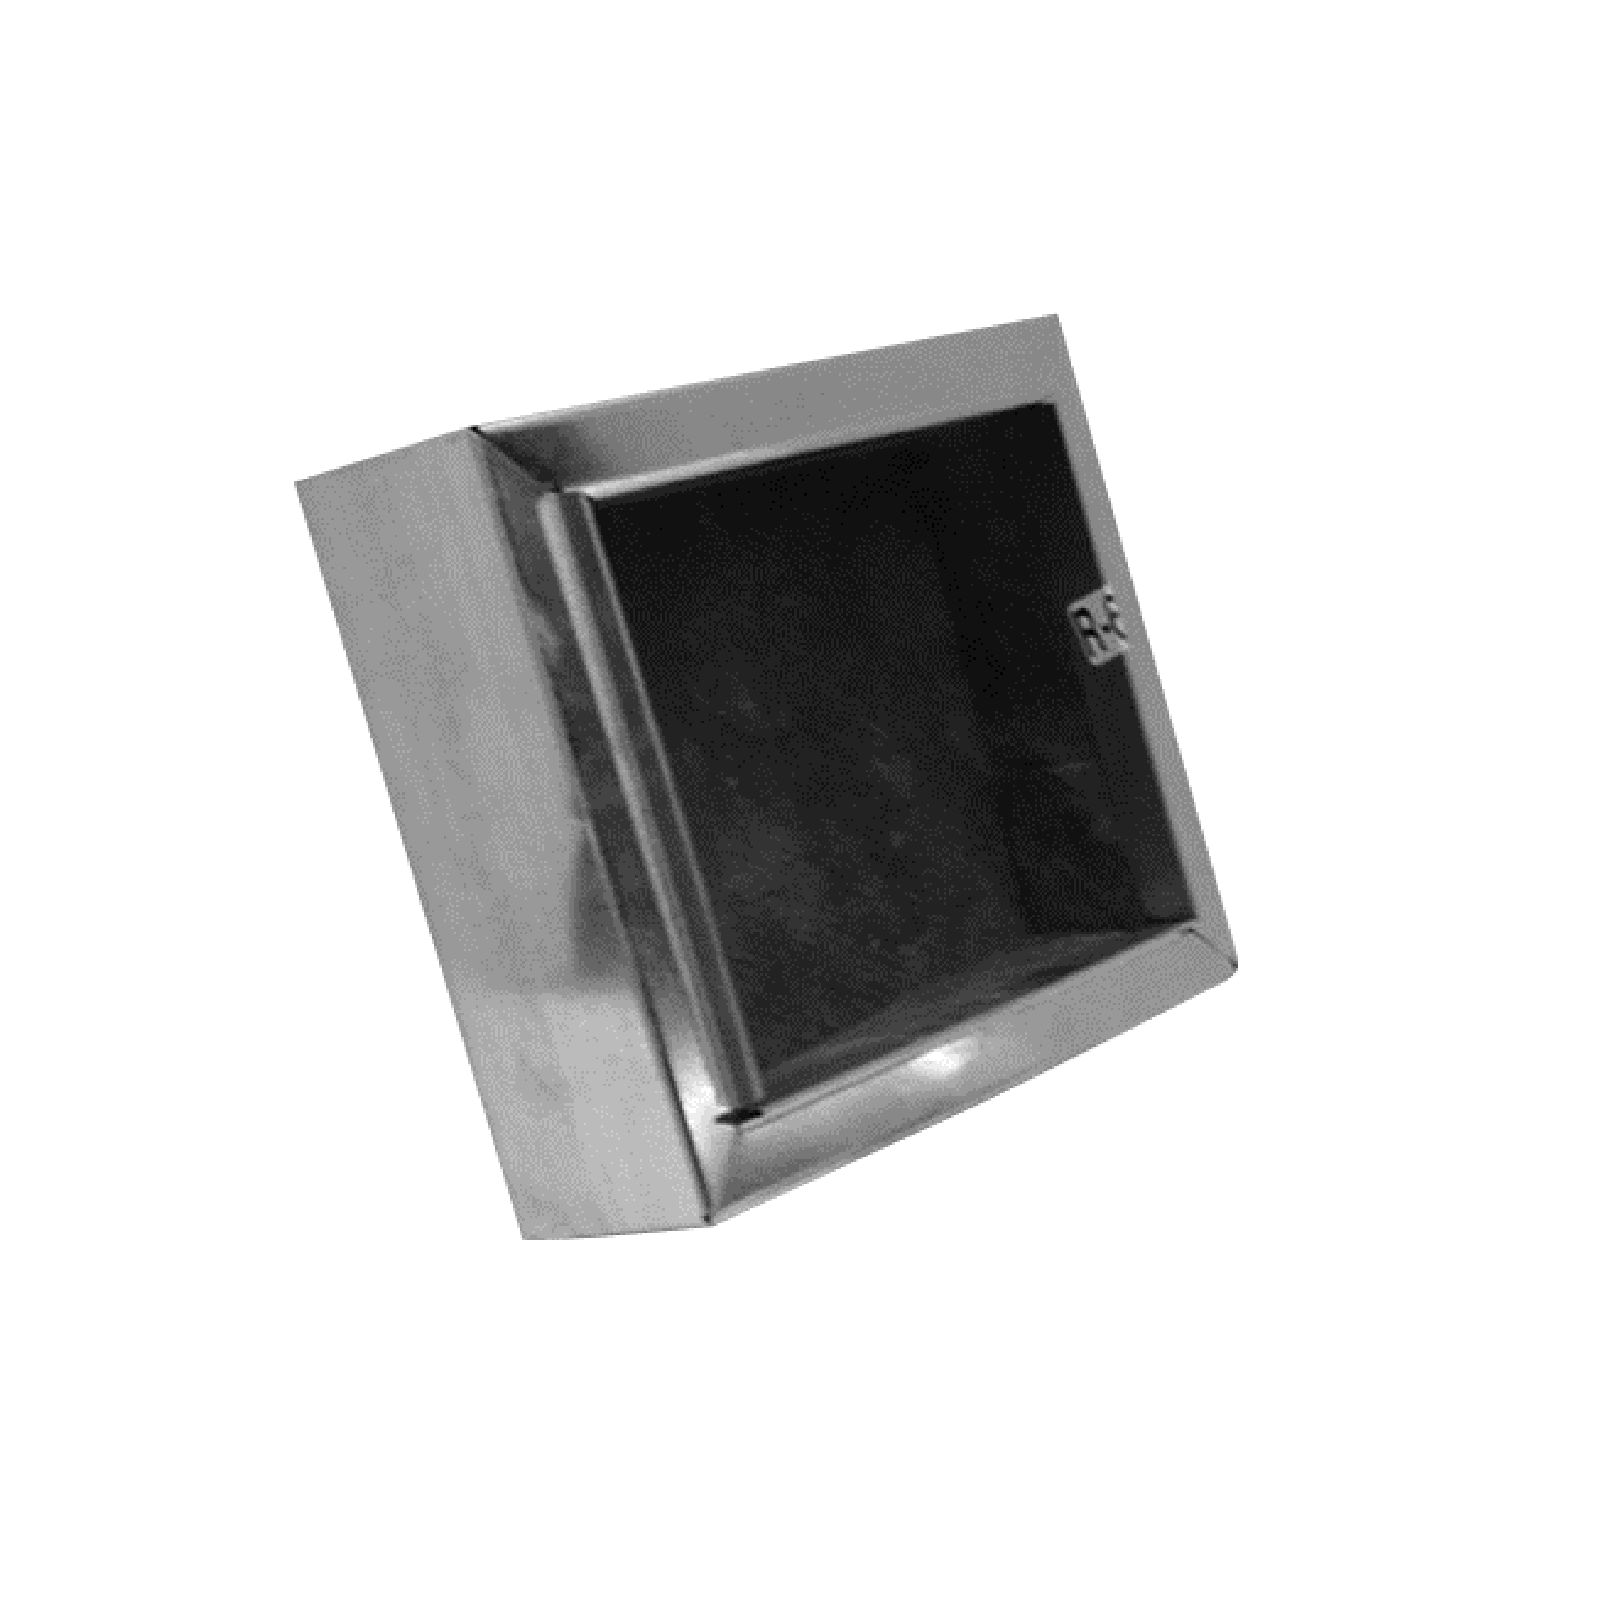 "Mitchell Metal 40R61006 - 10"" X 6"" Ductboard Register Box - R6 Ductboard Applications"